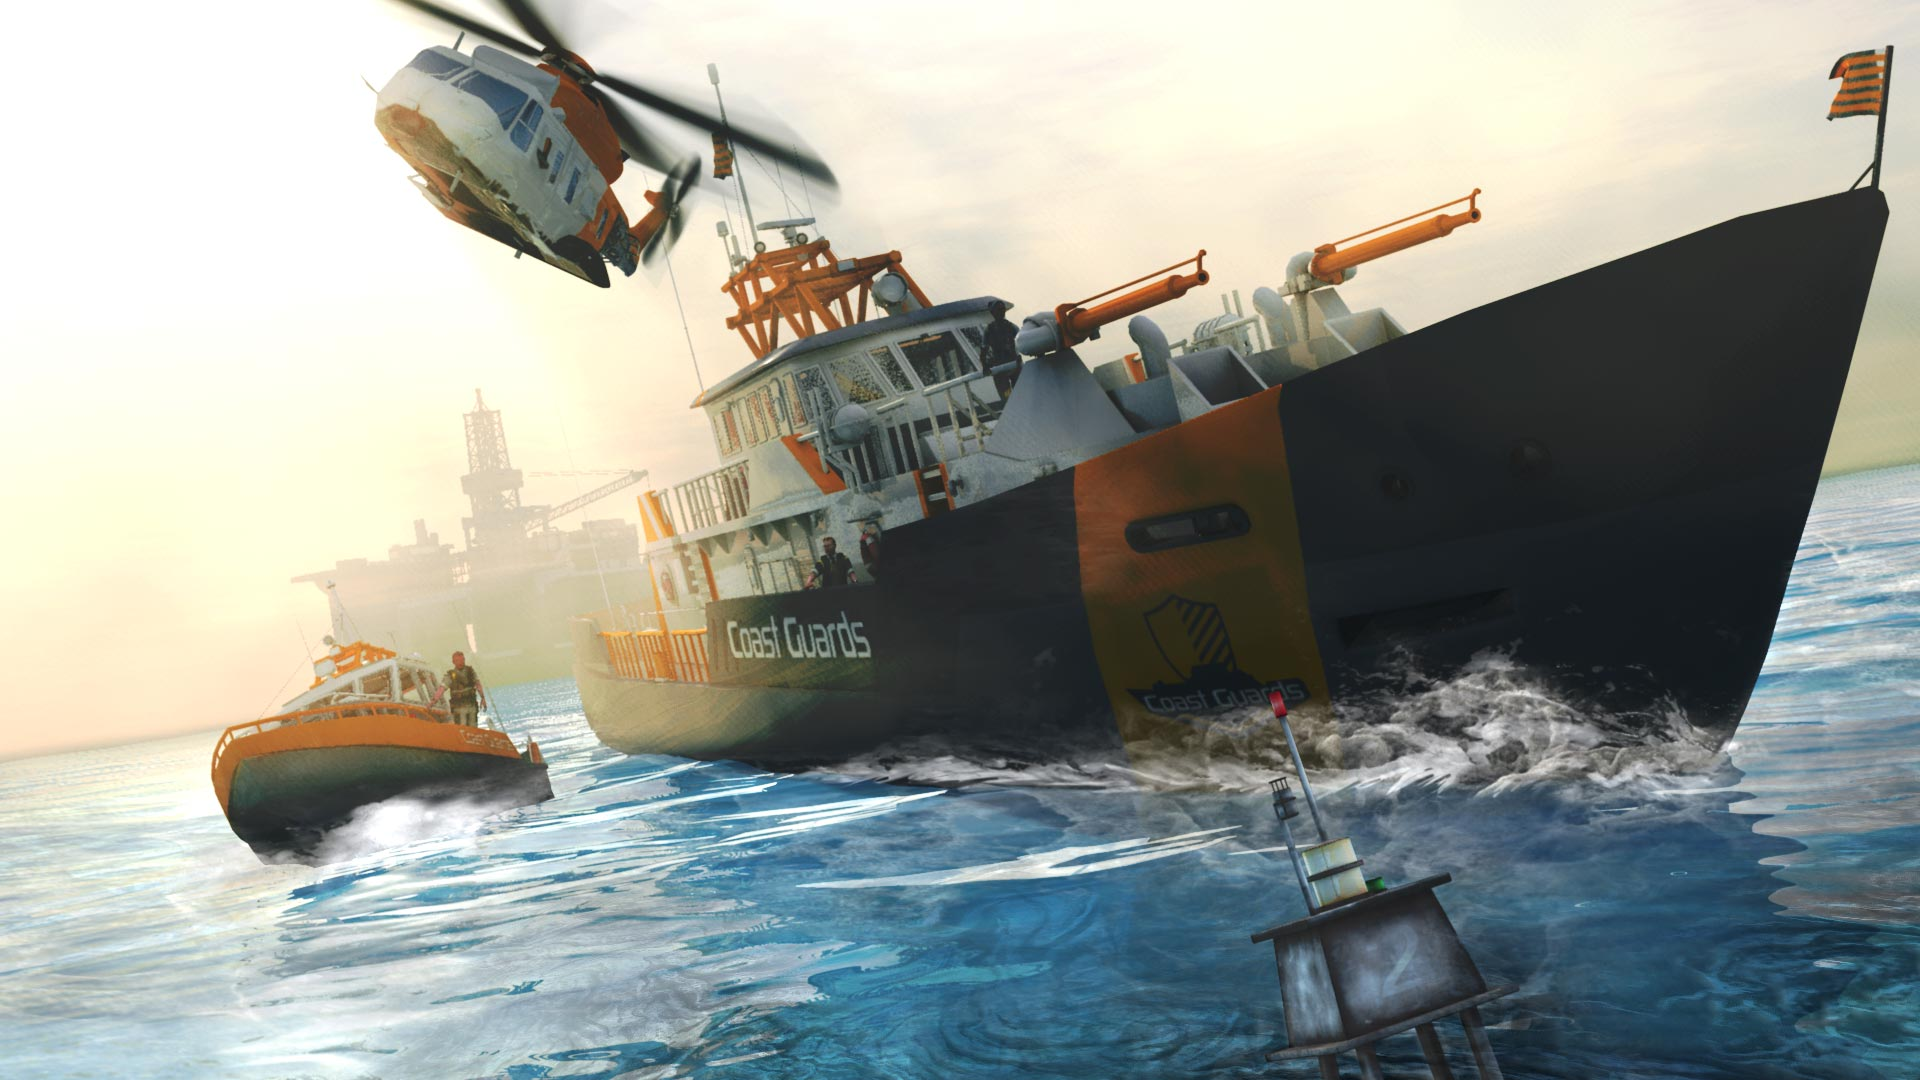 ESD73042_coast_guard_Header_1920x1080.jpg